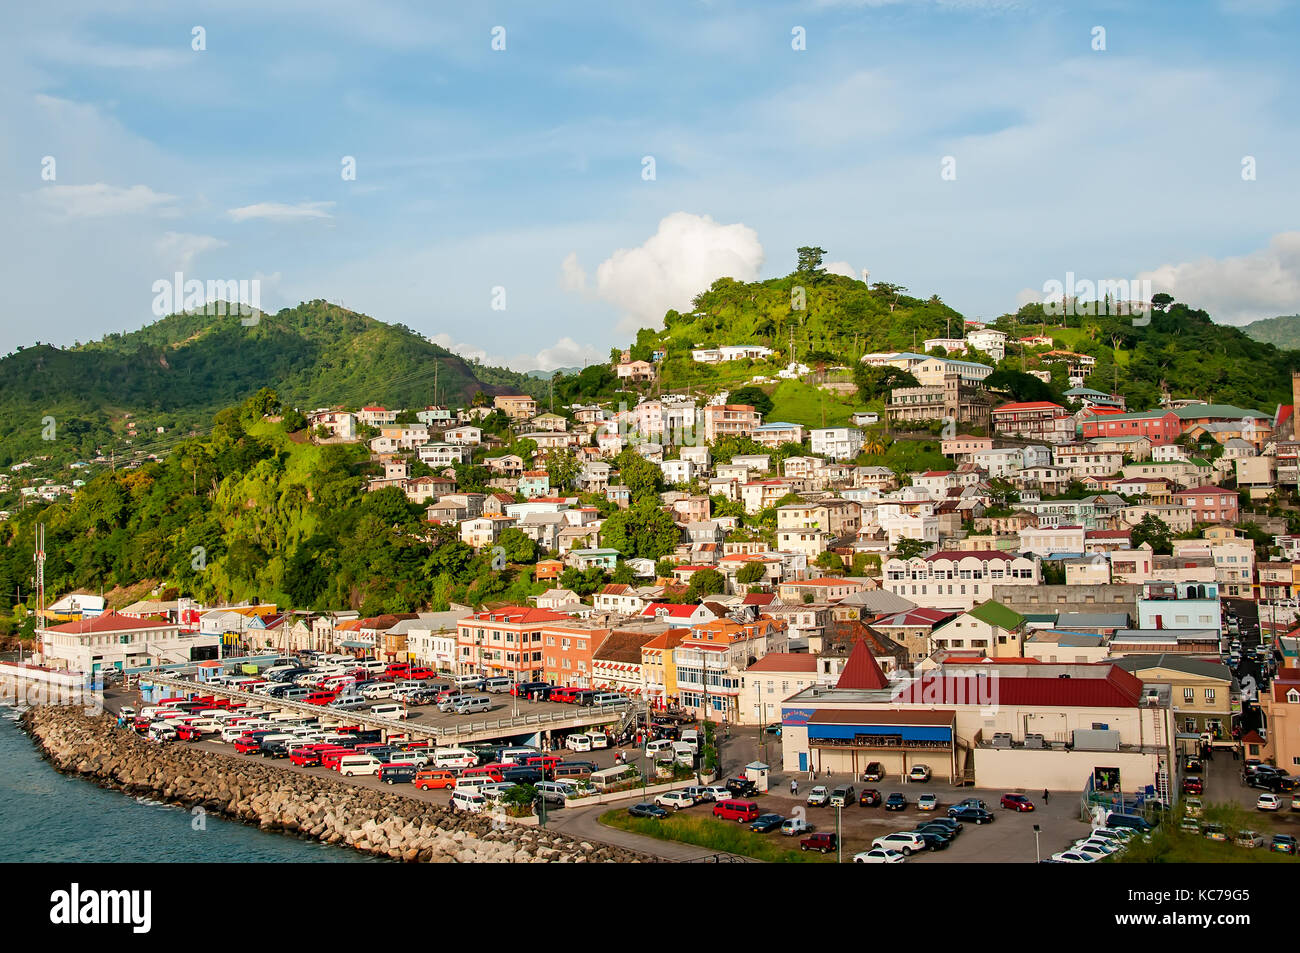 Above looking down on Melville Street near St. George's cruise terminal Grenada, - Stock Image